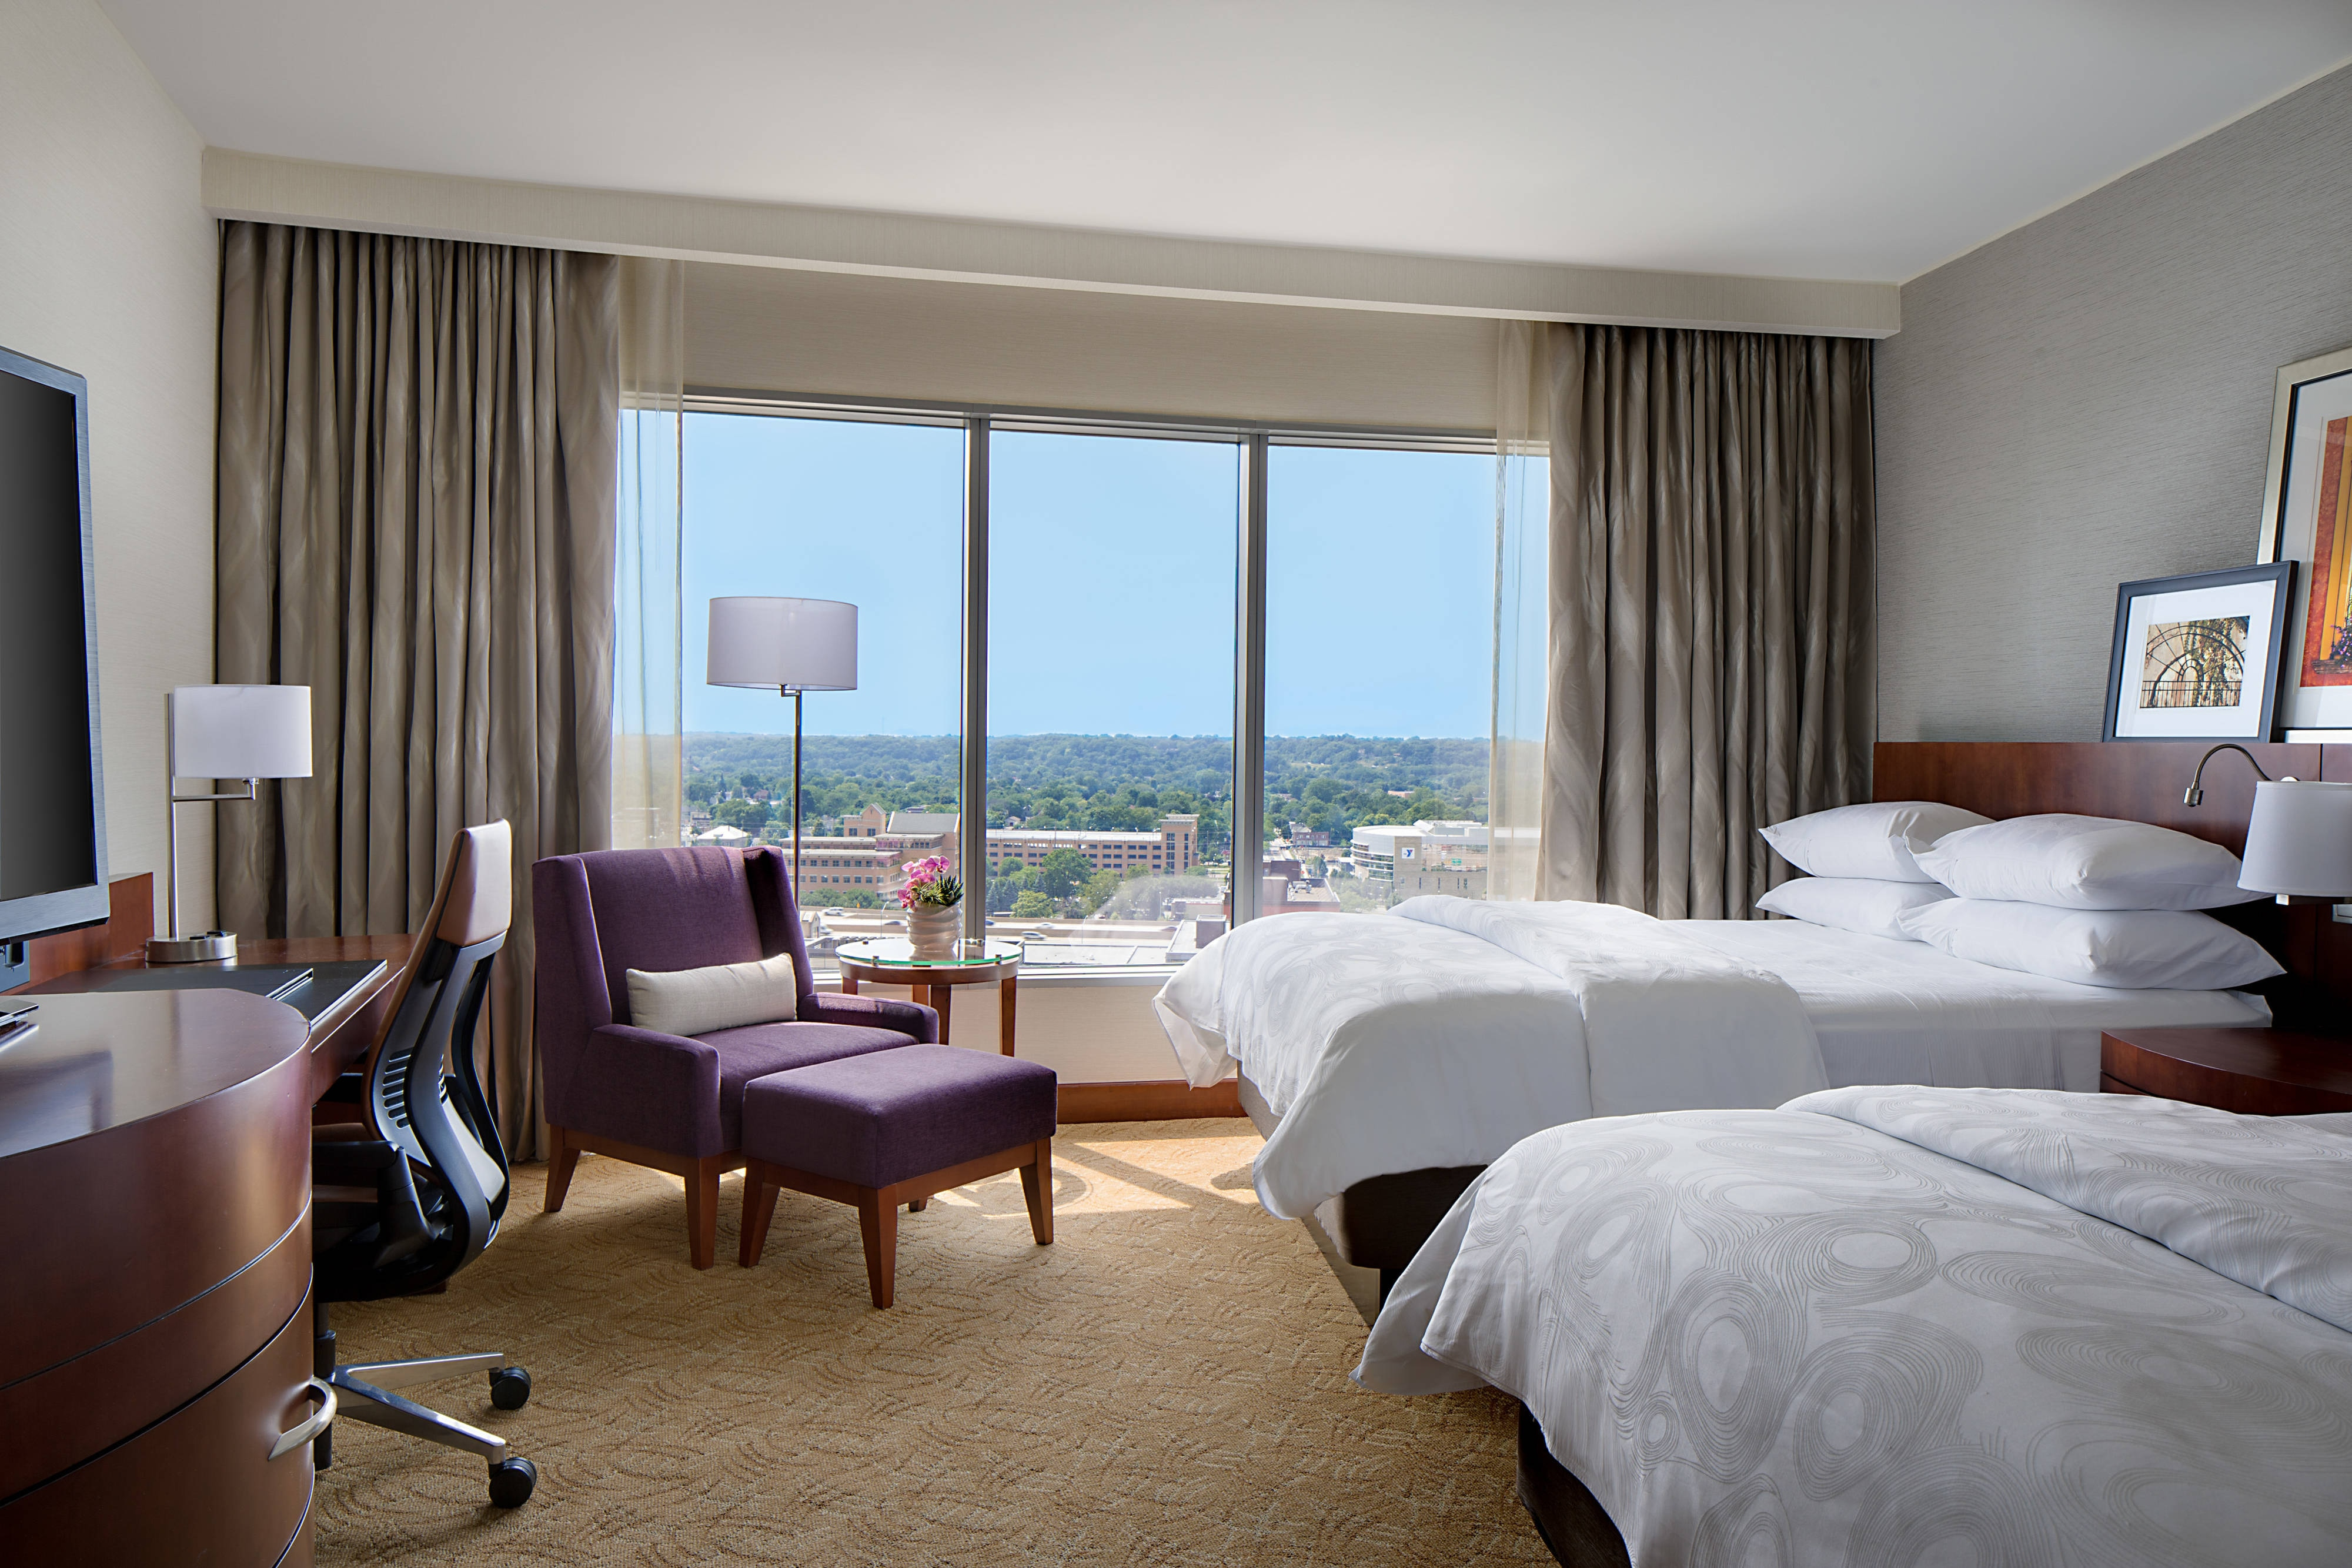 Queen Guest Room With View